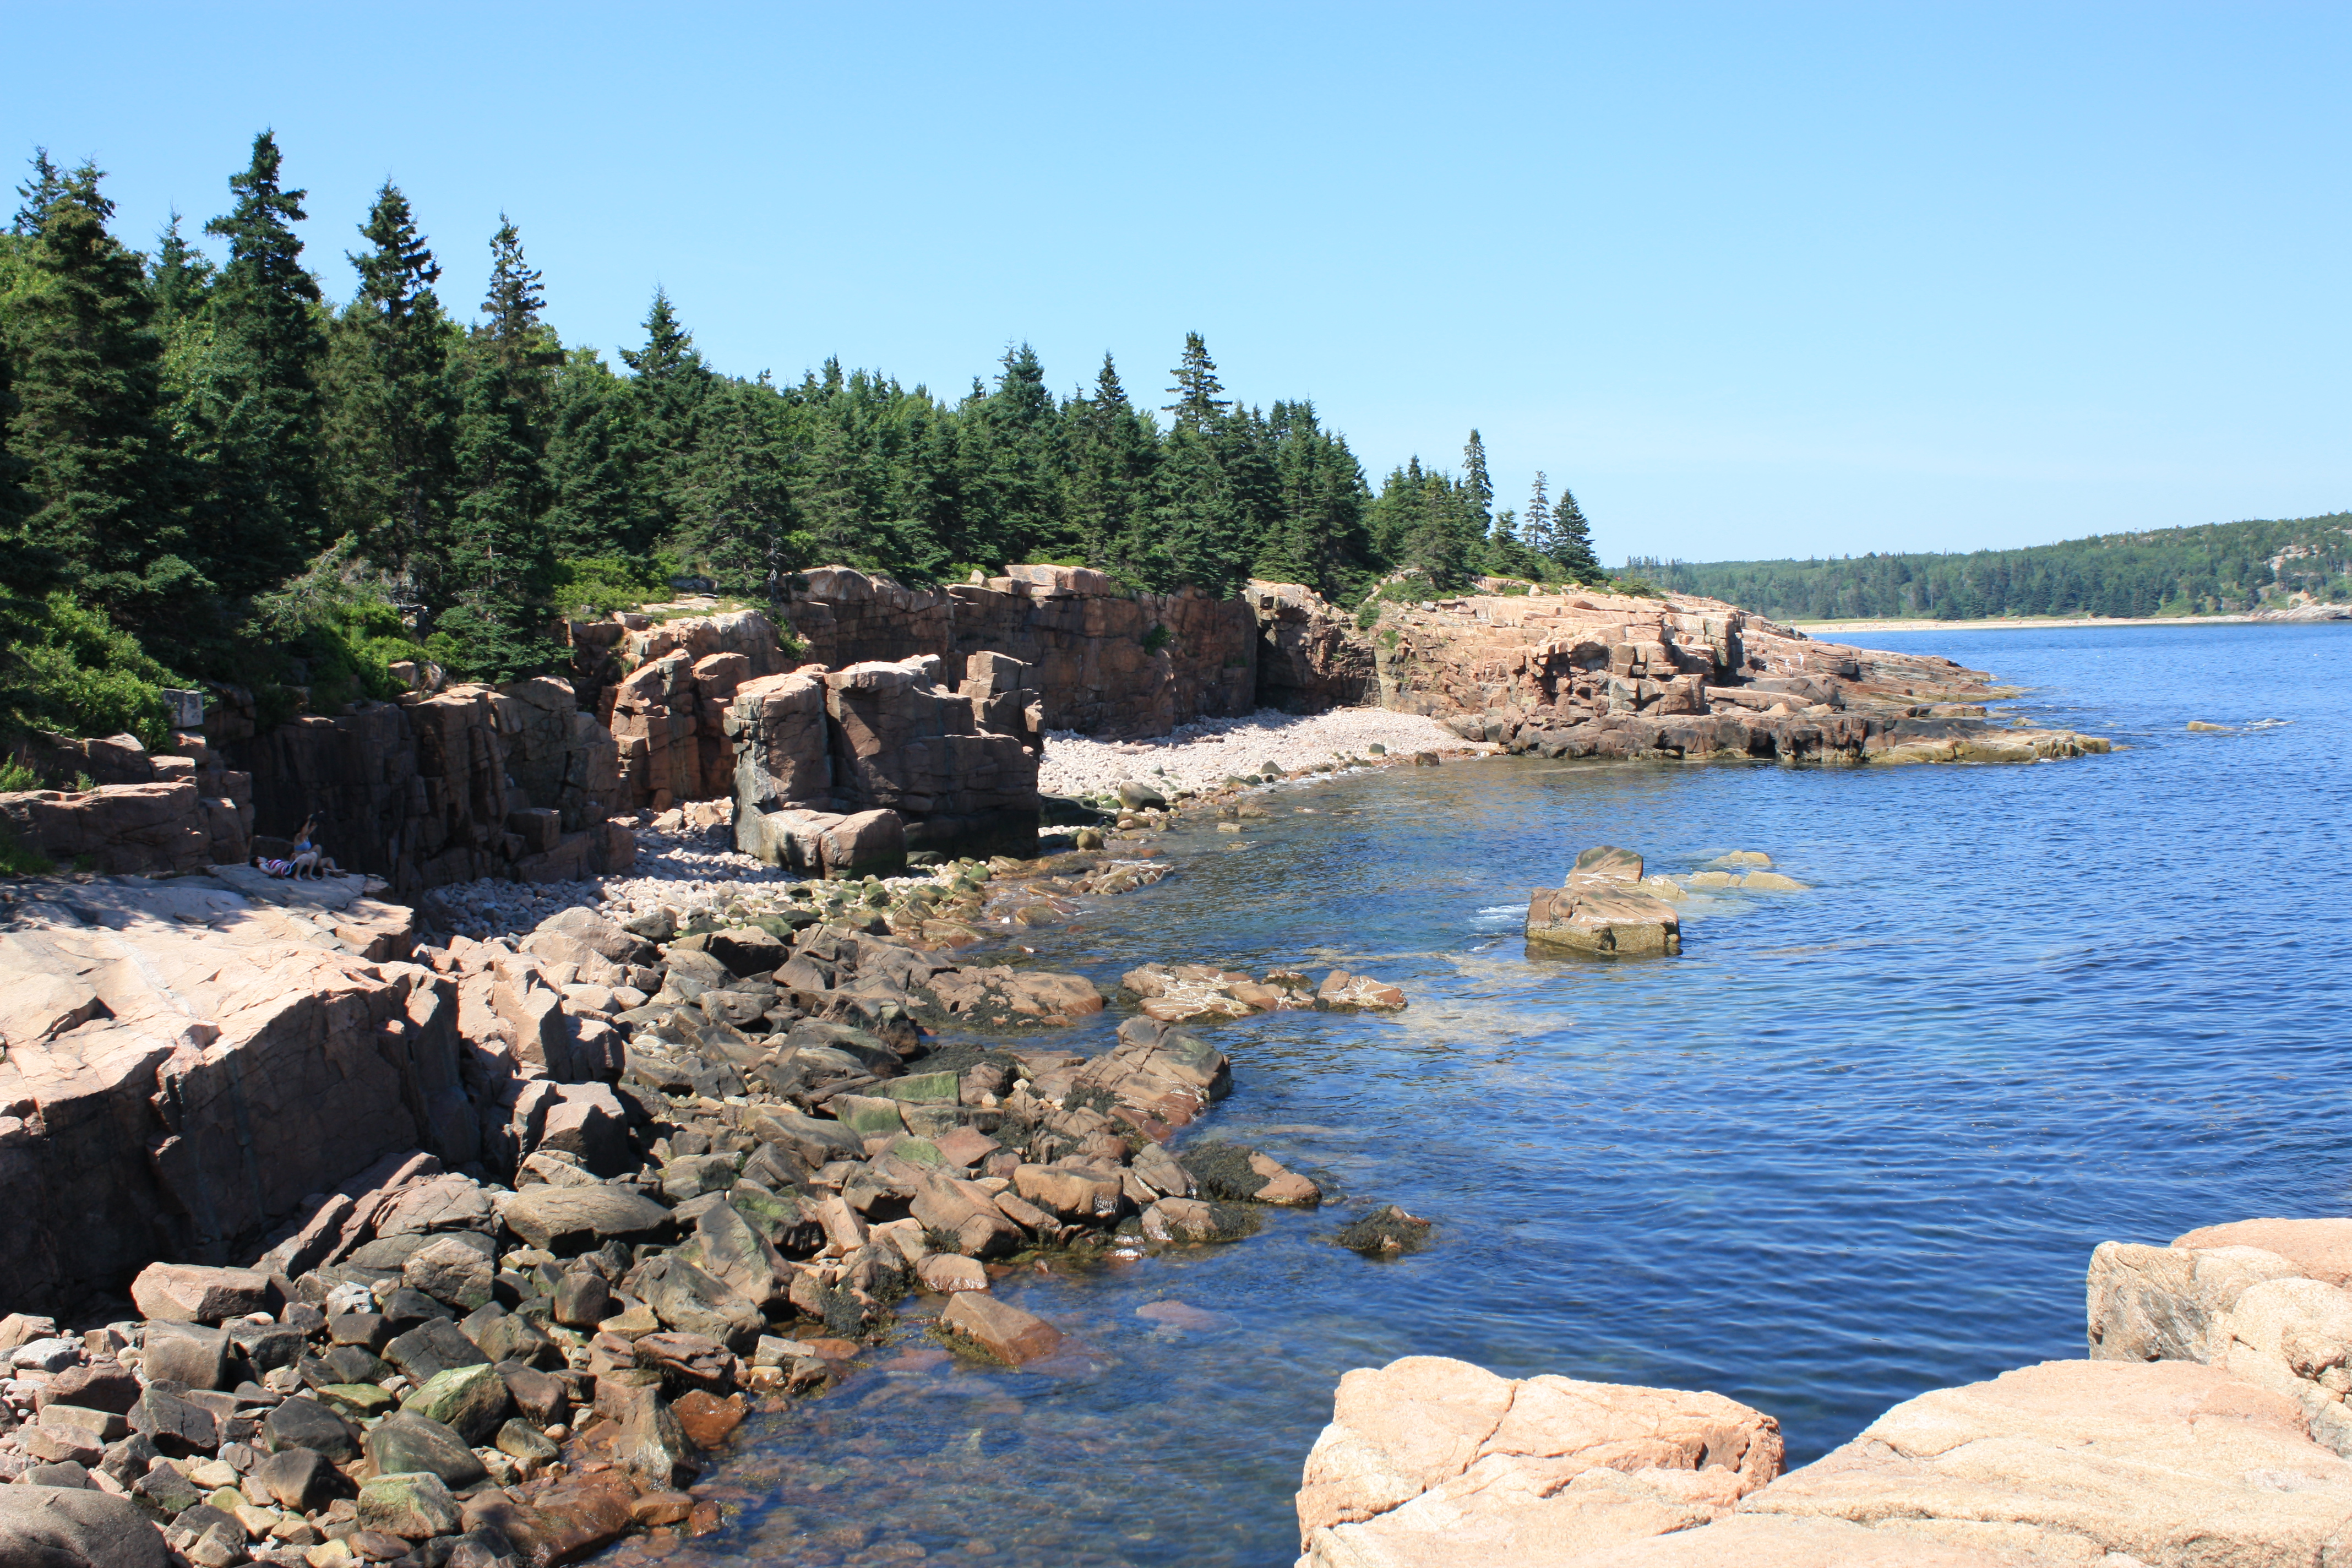 File A beach in maine on a clear day furthermore Cote Divoire Ethnic Division in addition File east coast main line with high speed train   geograph org uk   382679 as well ChrisSopherPhotographer asp Dir PeoriaPhotos photography Cohen Building together with Cutler Coast. on 2